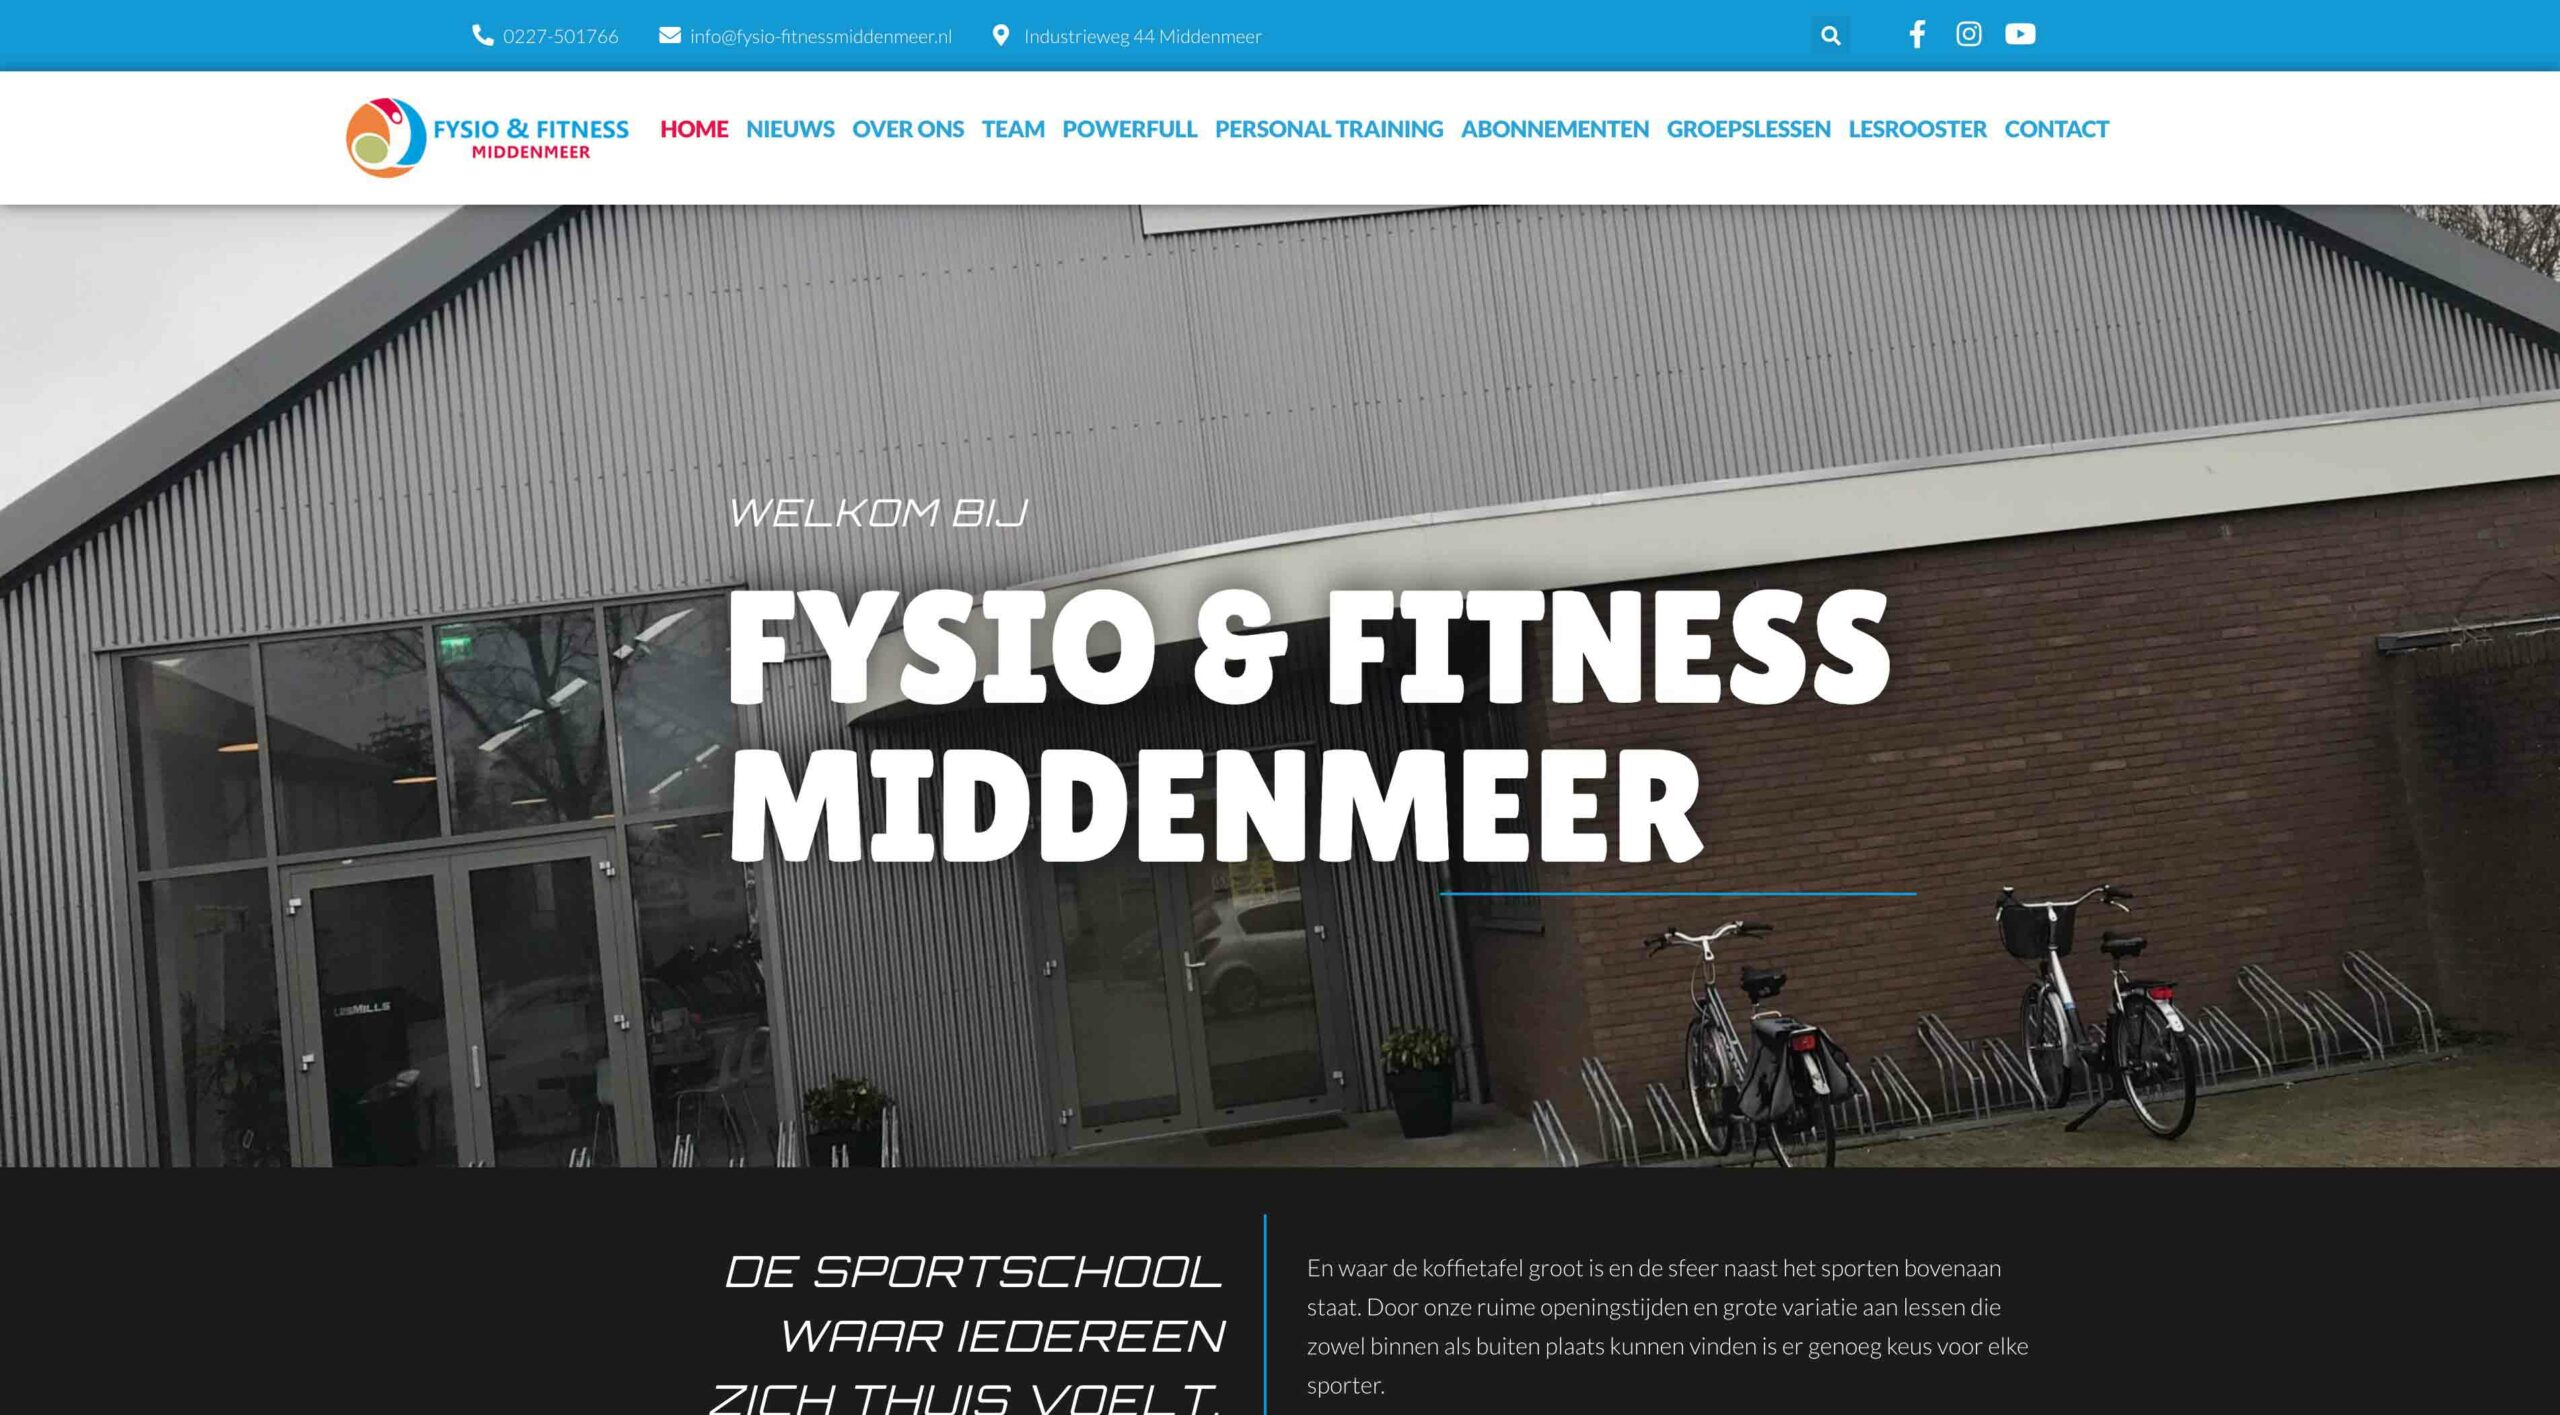 313 - Fysio & Fitness Middenmeer